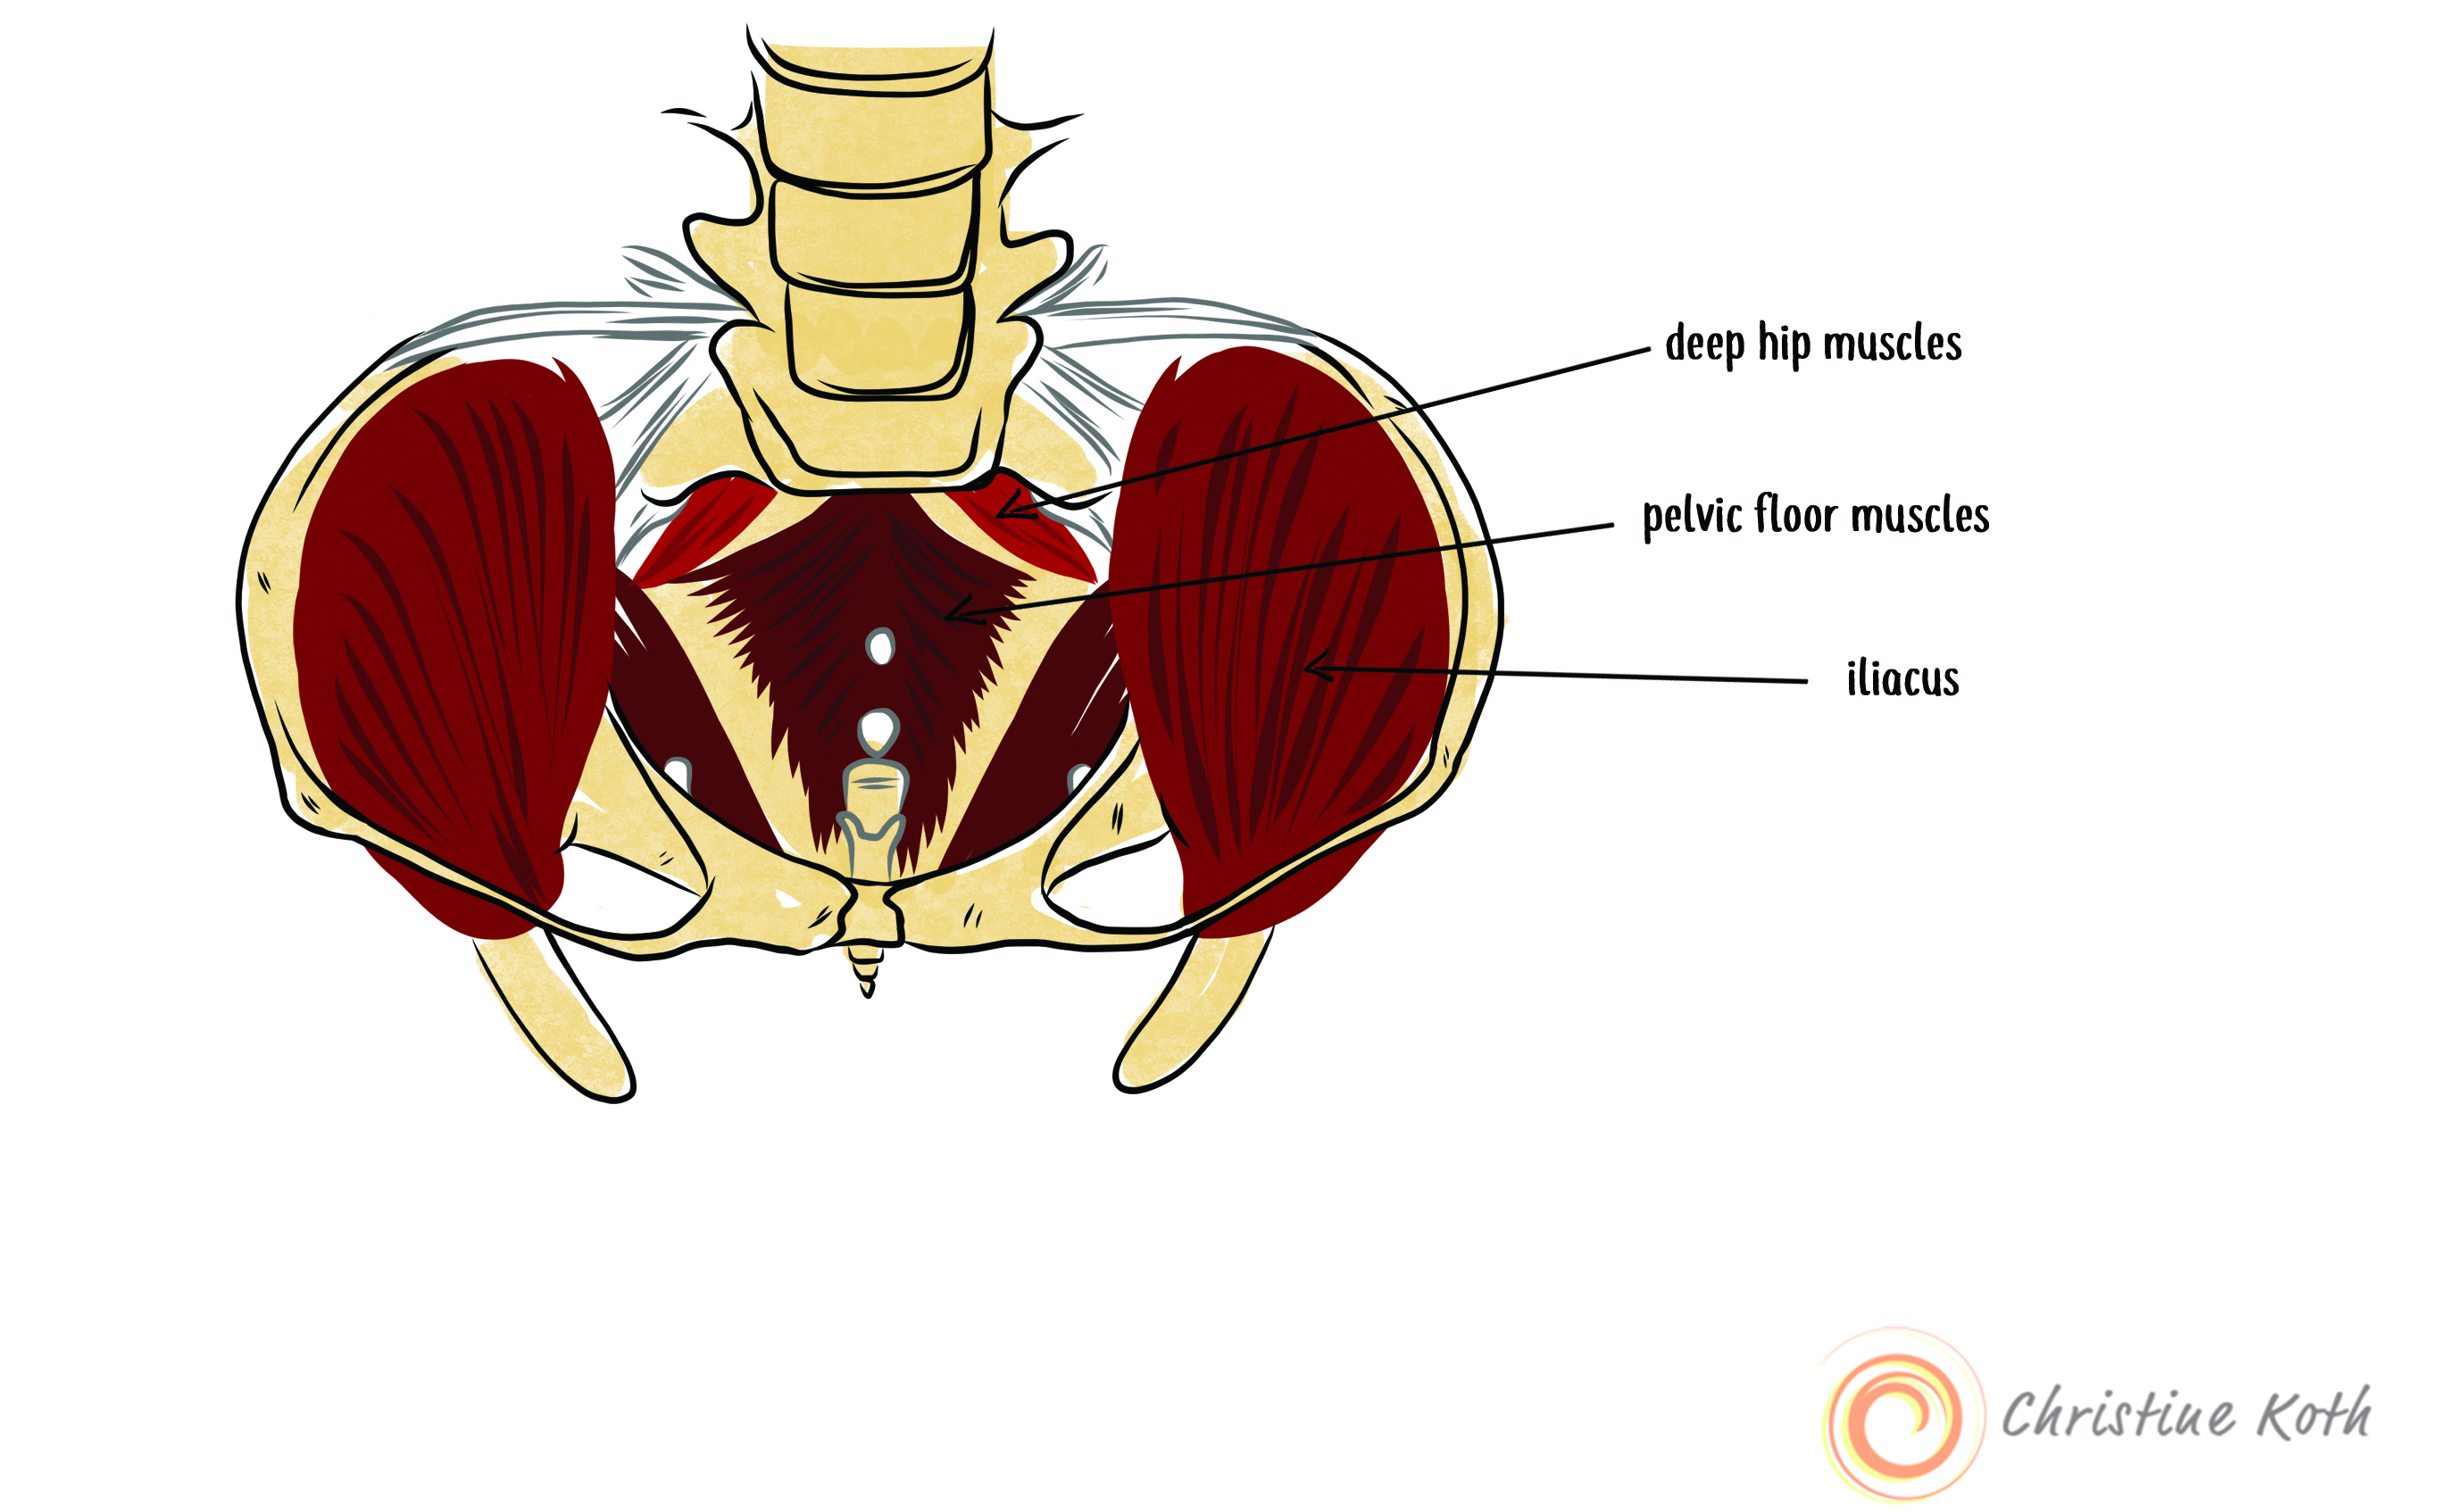 The iliacus and its intimate connection to the pelvic floor